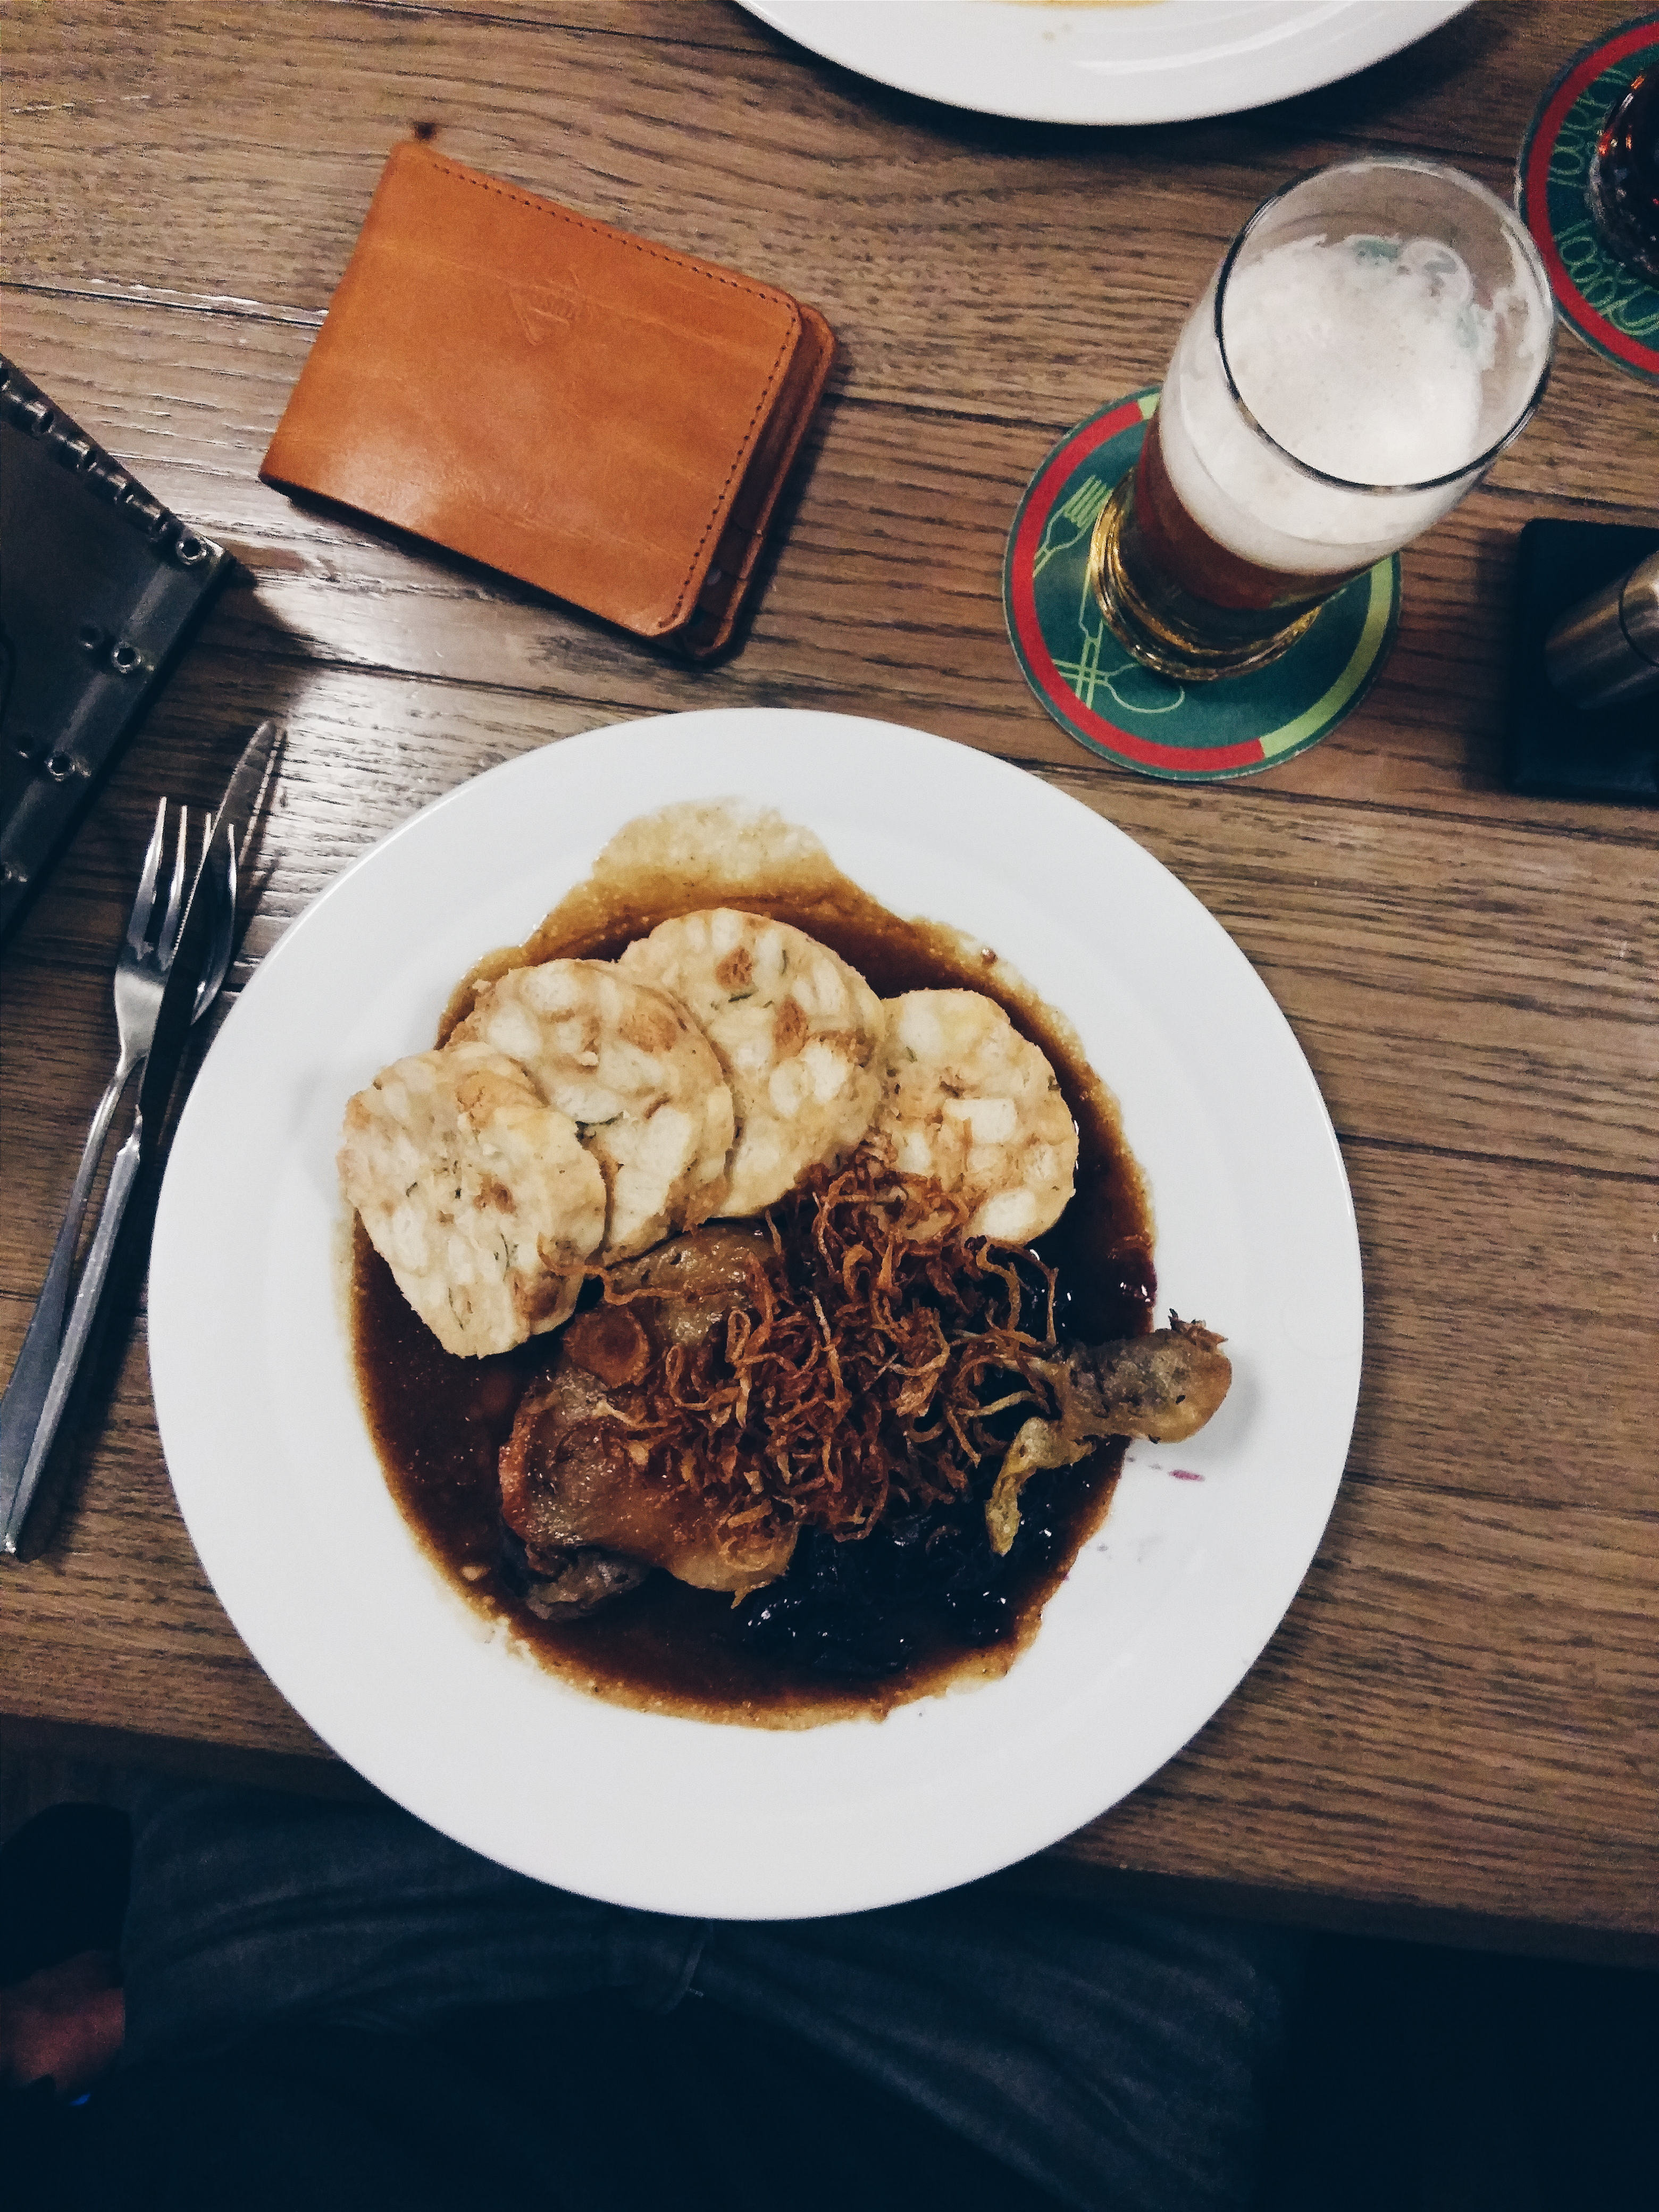 Czech roasted duck with sauerkraut and dumplings